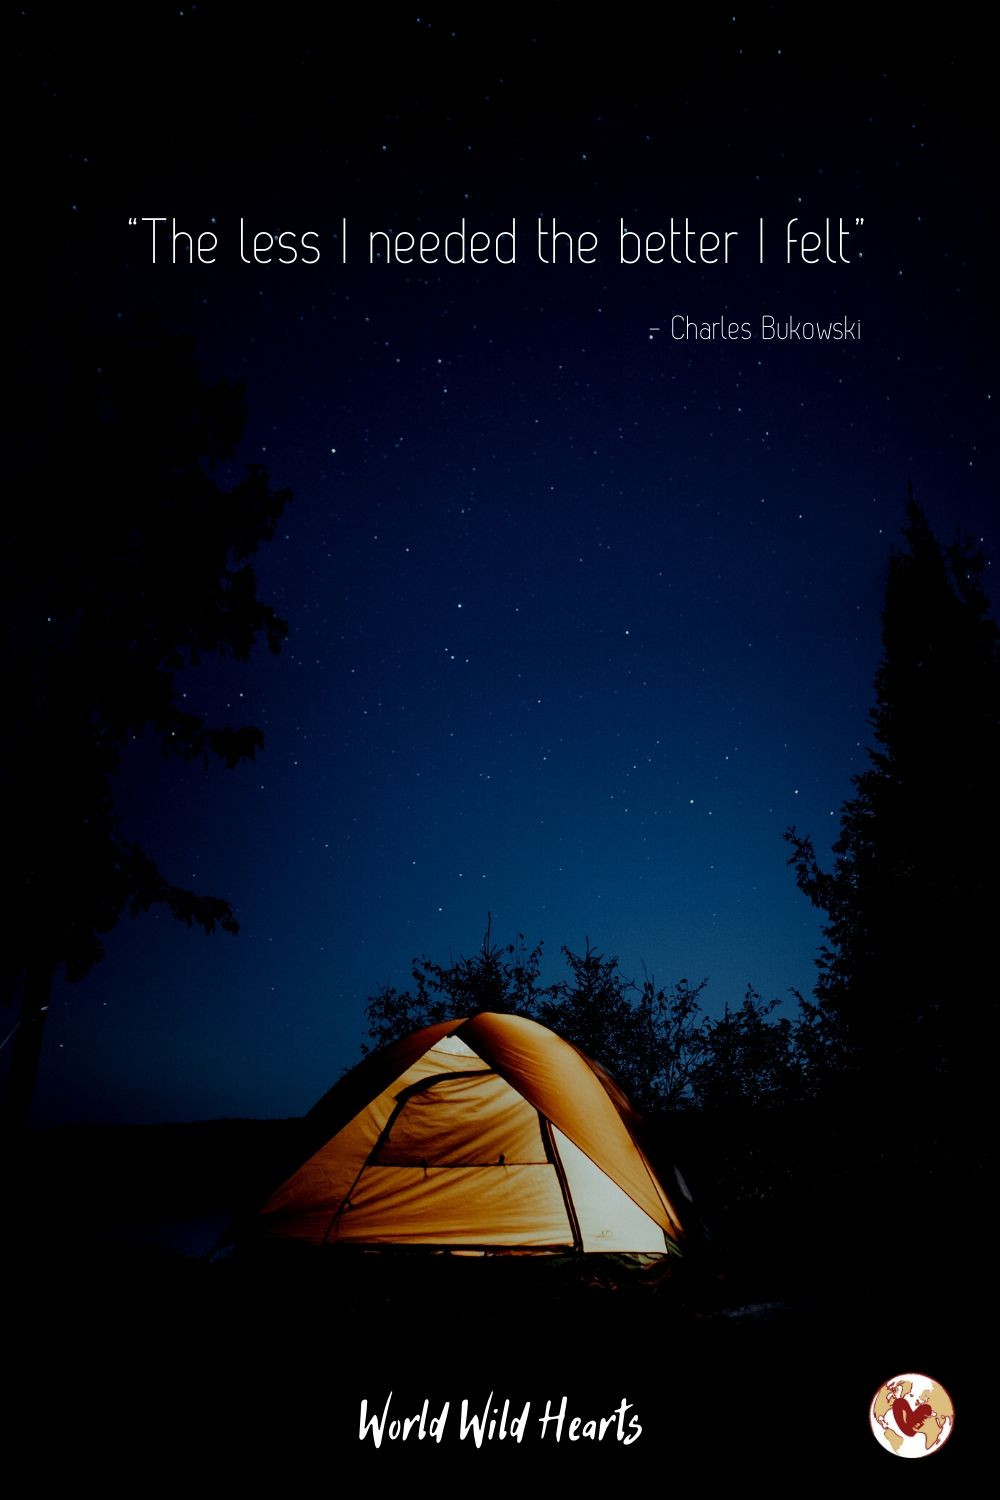 Wanderlust quote camping